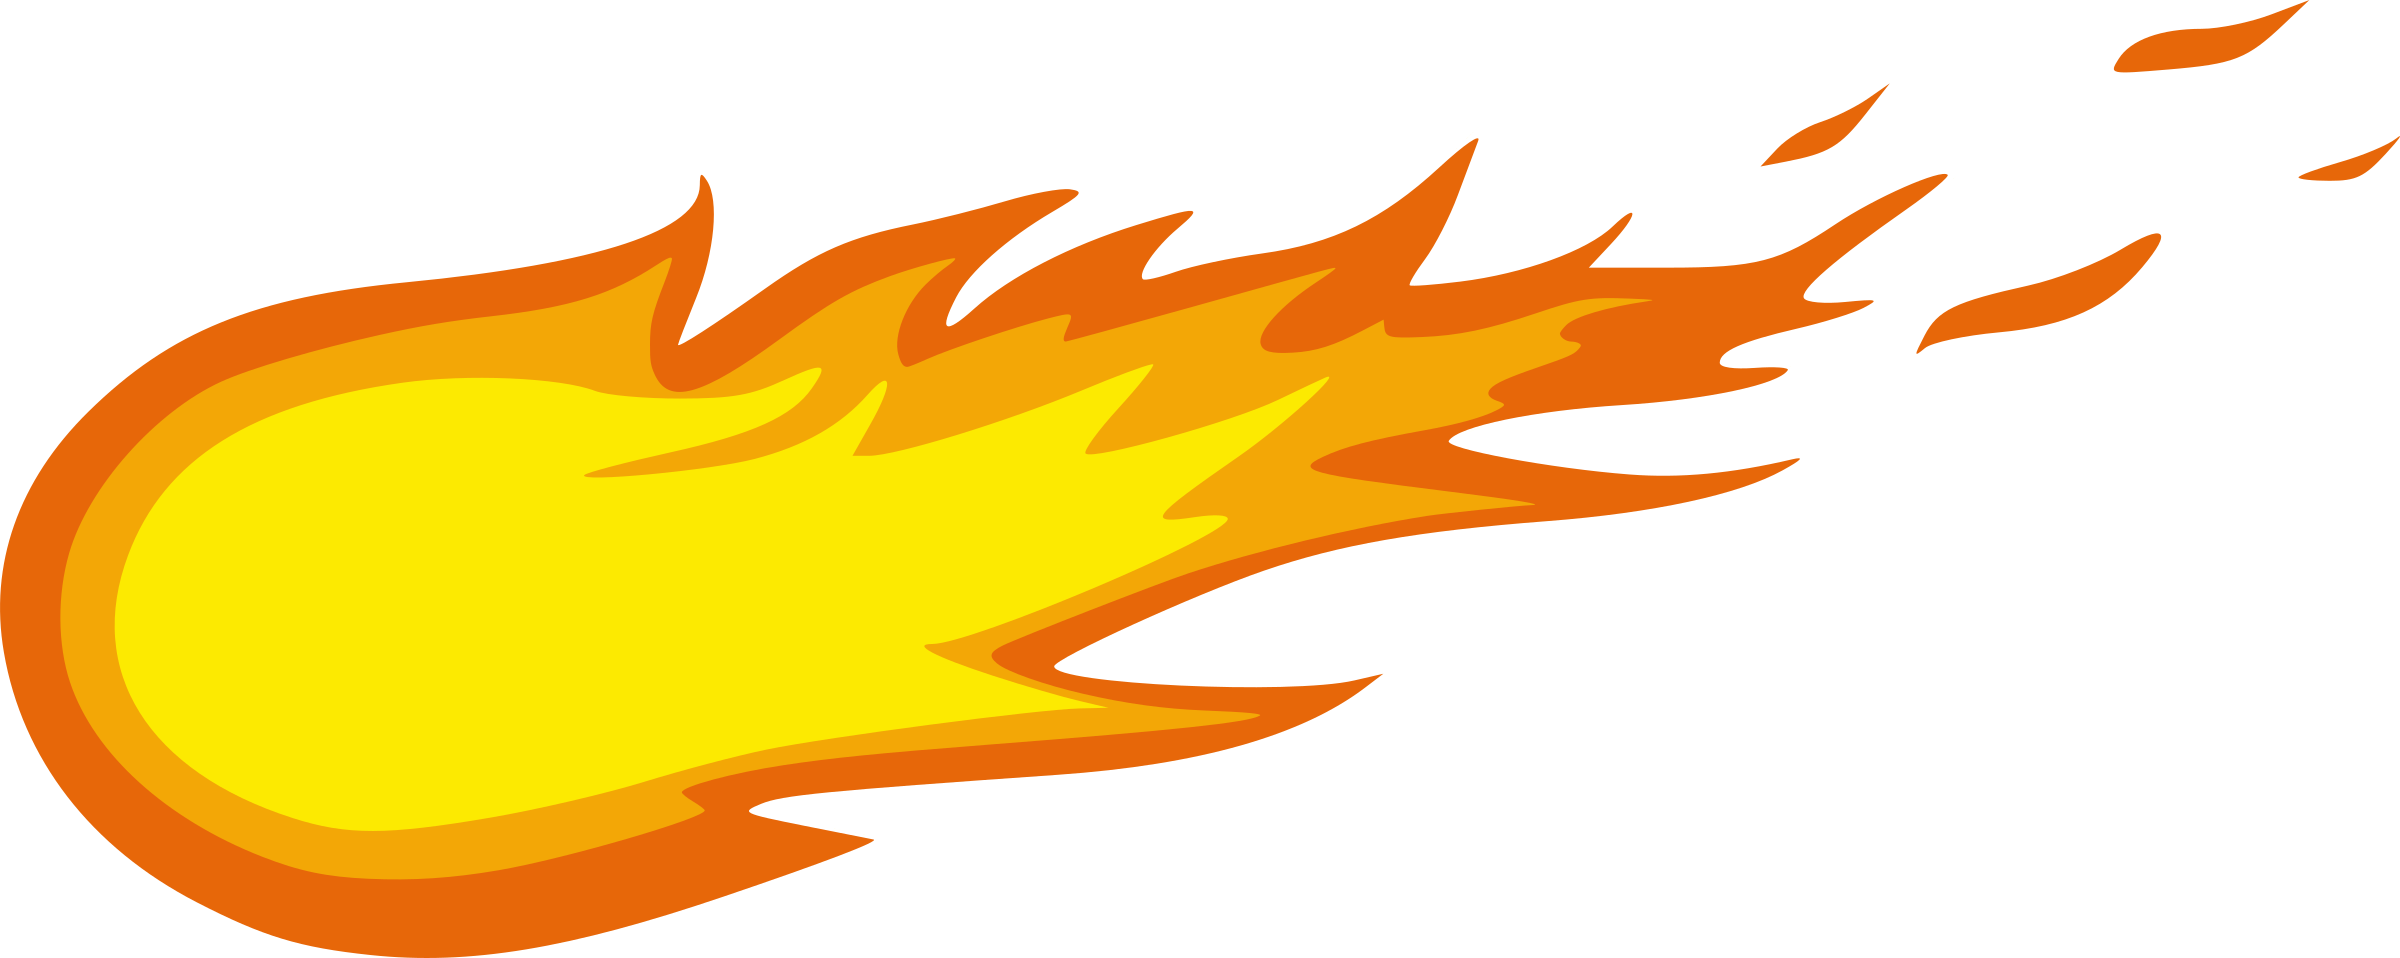 2400x958 Flame clipart fireball